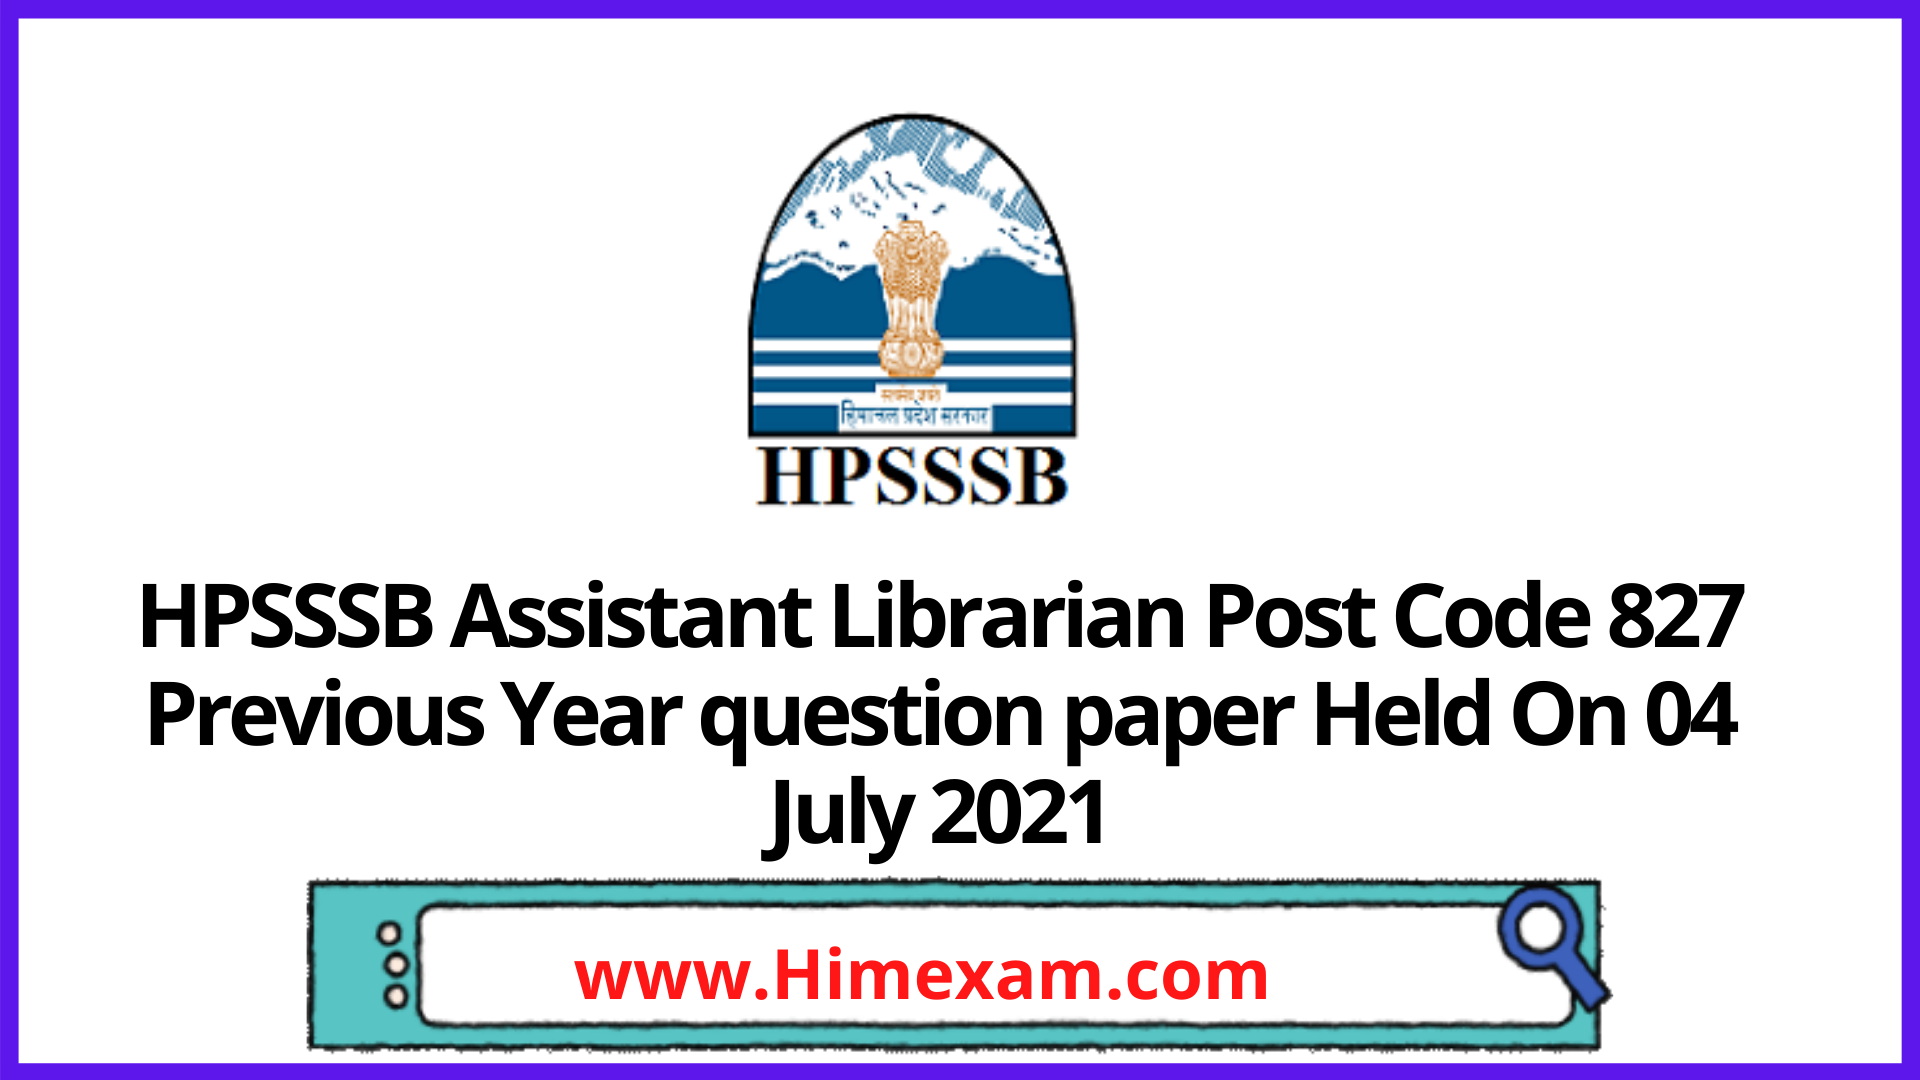 HPSSSB  Assistant Librarian Post Code 827  Previous Year question paper Held On 04  July 2021